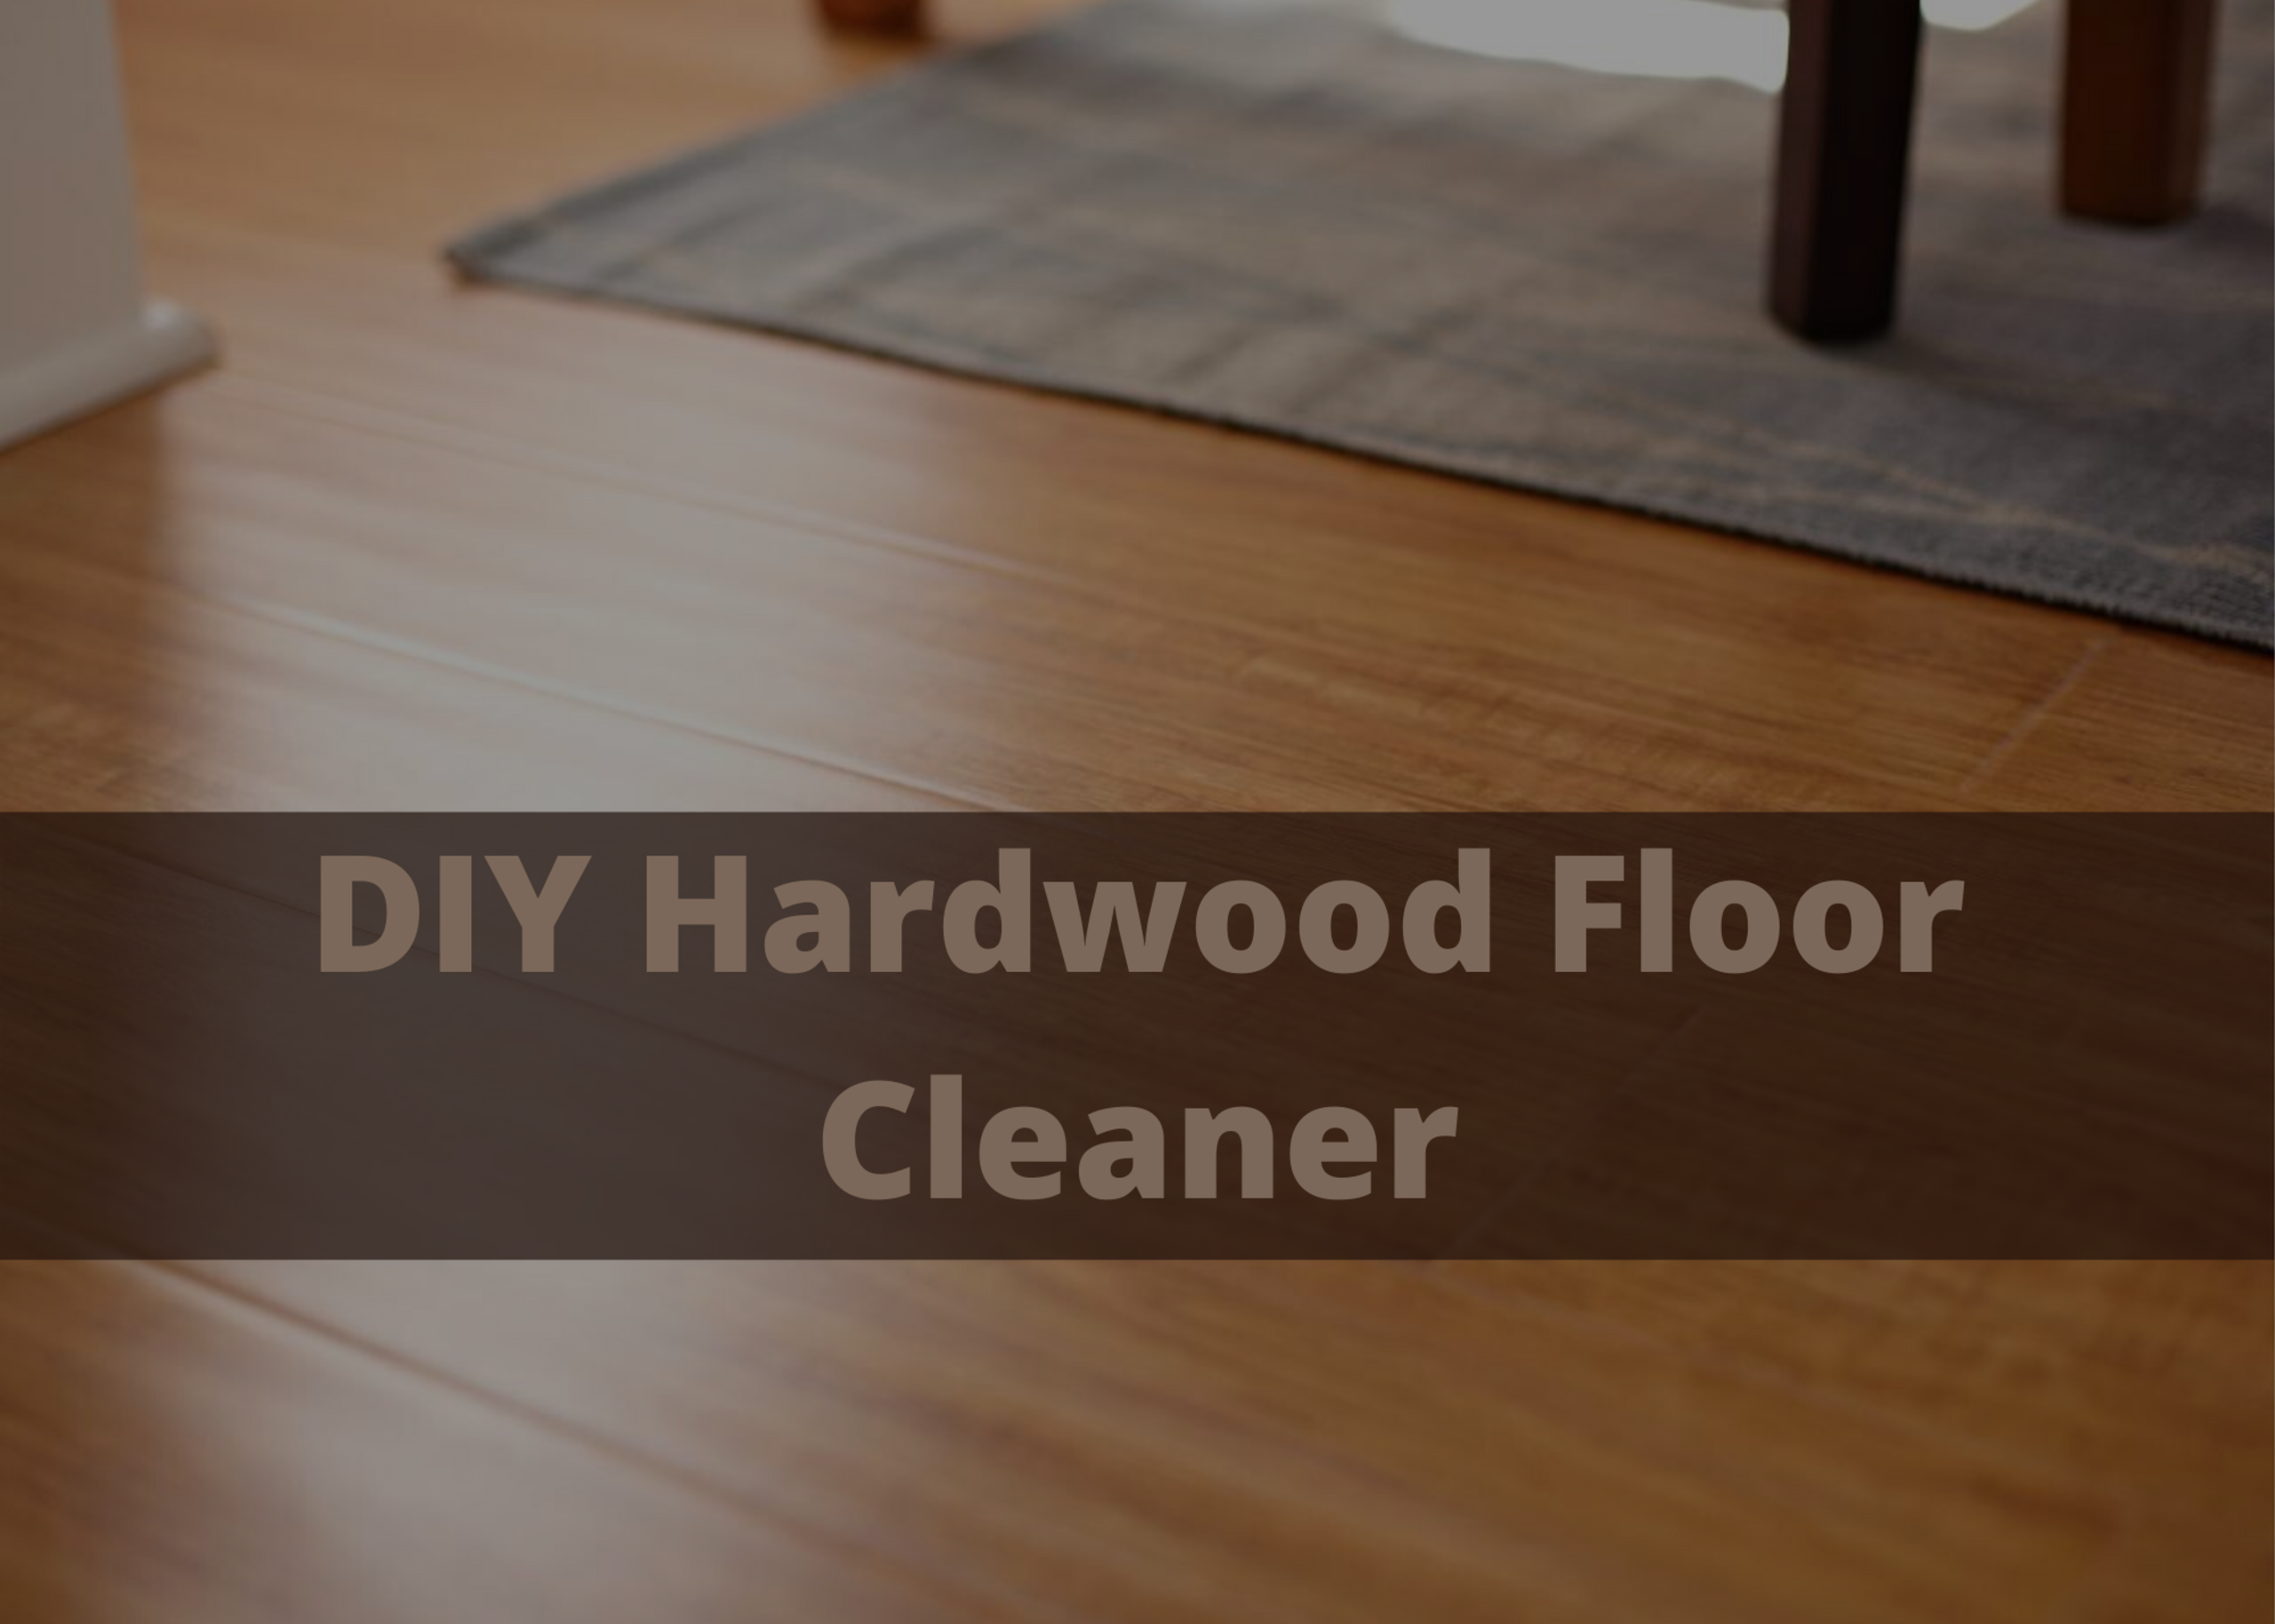 DIY Hardwood Floor Cleaner